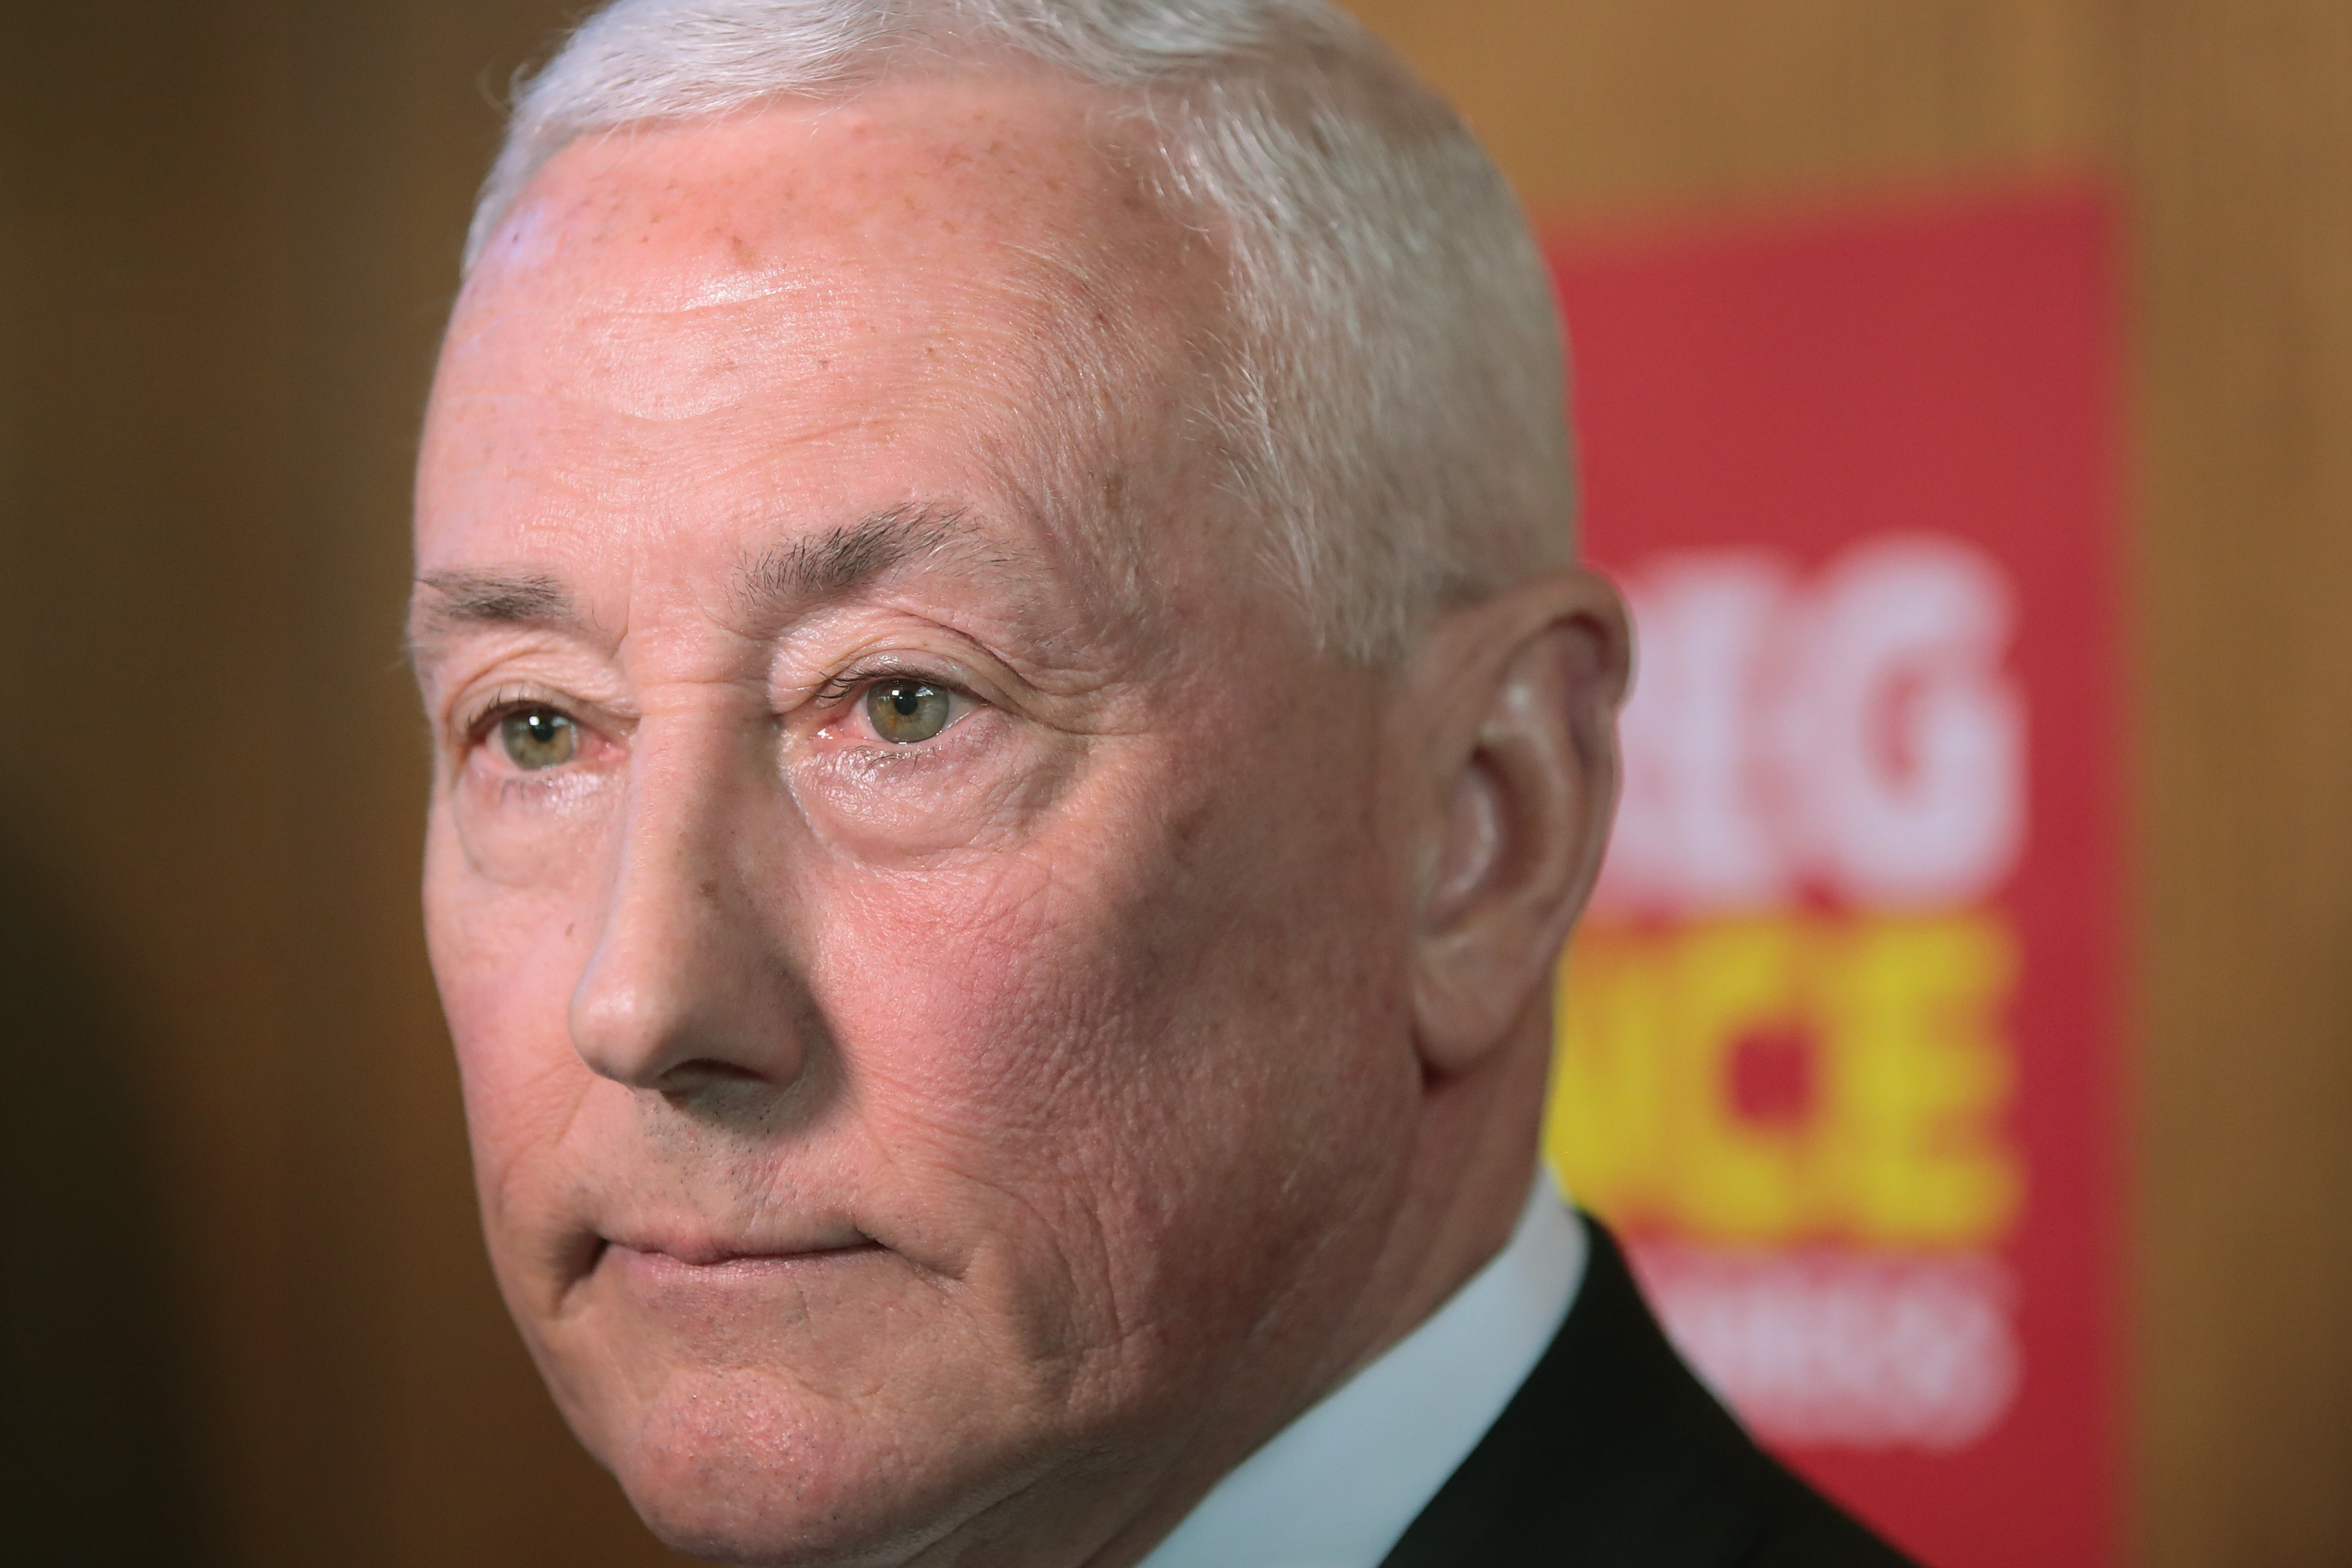 COLUMBUS, IN - MAY 08: Greg Pence, Republican candidate for the U.S. House of Representatives, speaks to the press at a primary-night watch party on May 8, 2018 in Columbus, Indiana. Greg Pence is the older brother of Vice President Mike Pence. (Photo by Scott Olson/Getty Images)